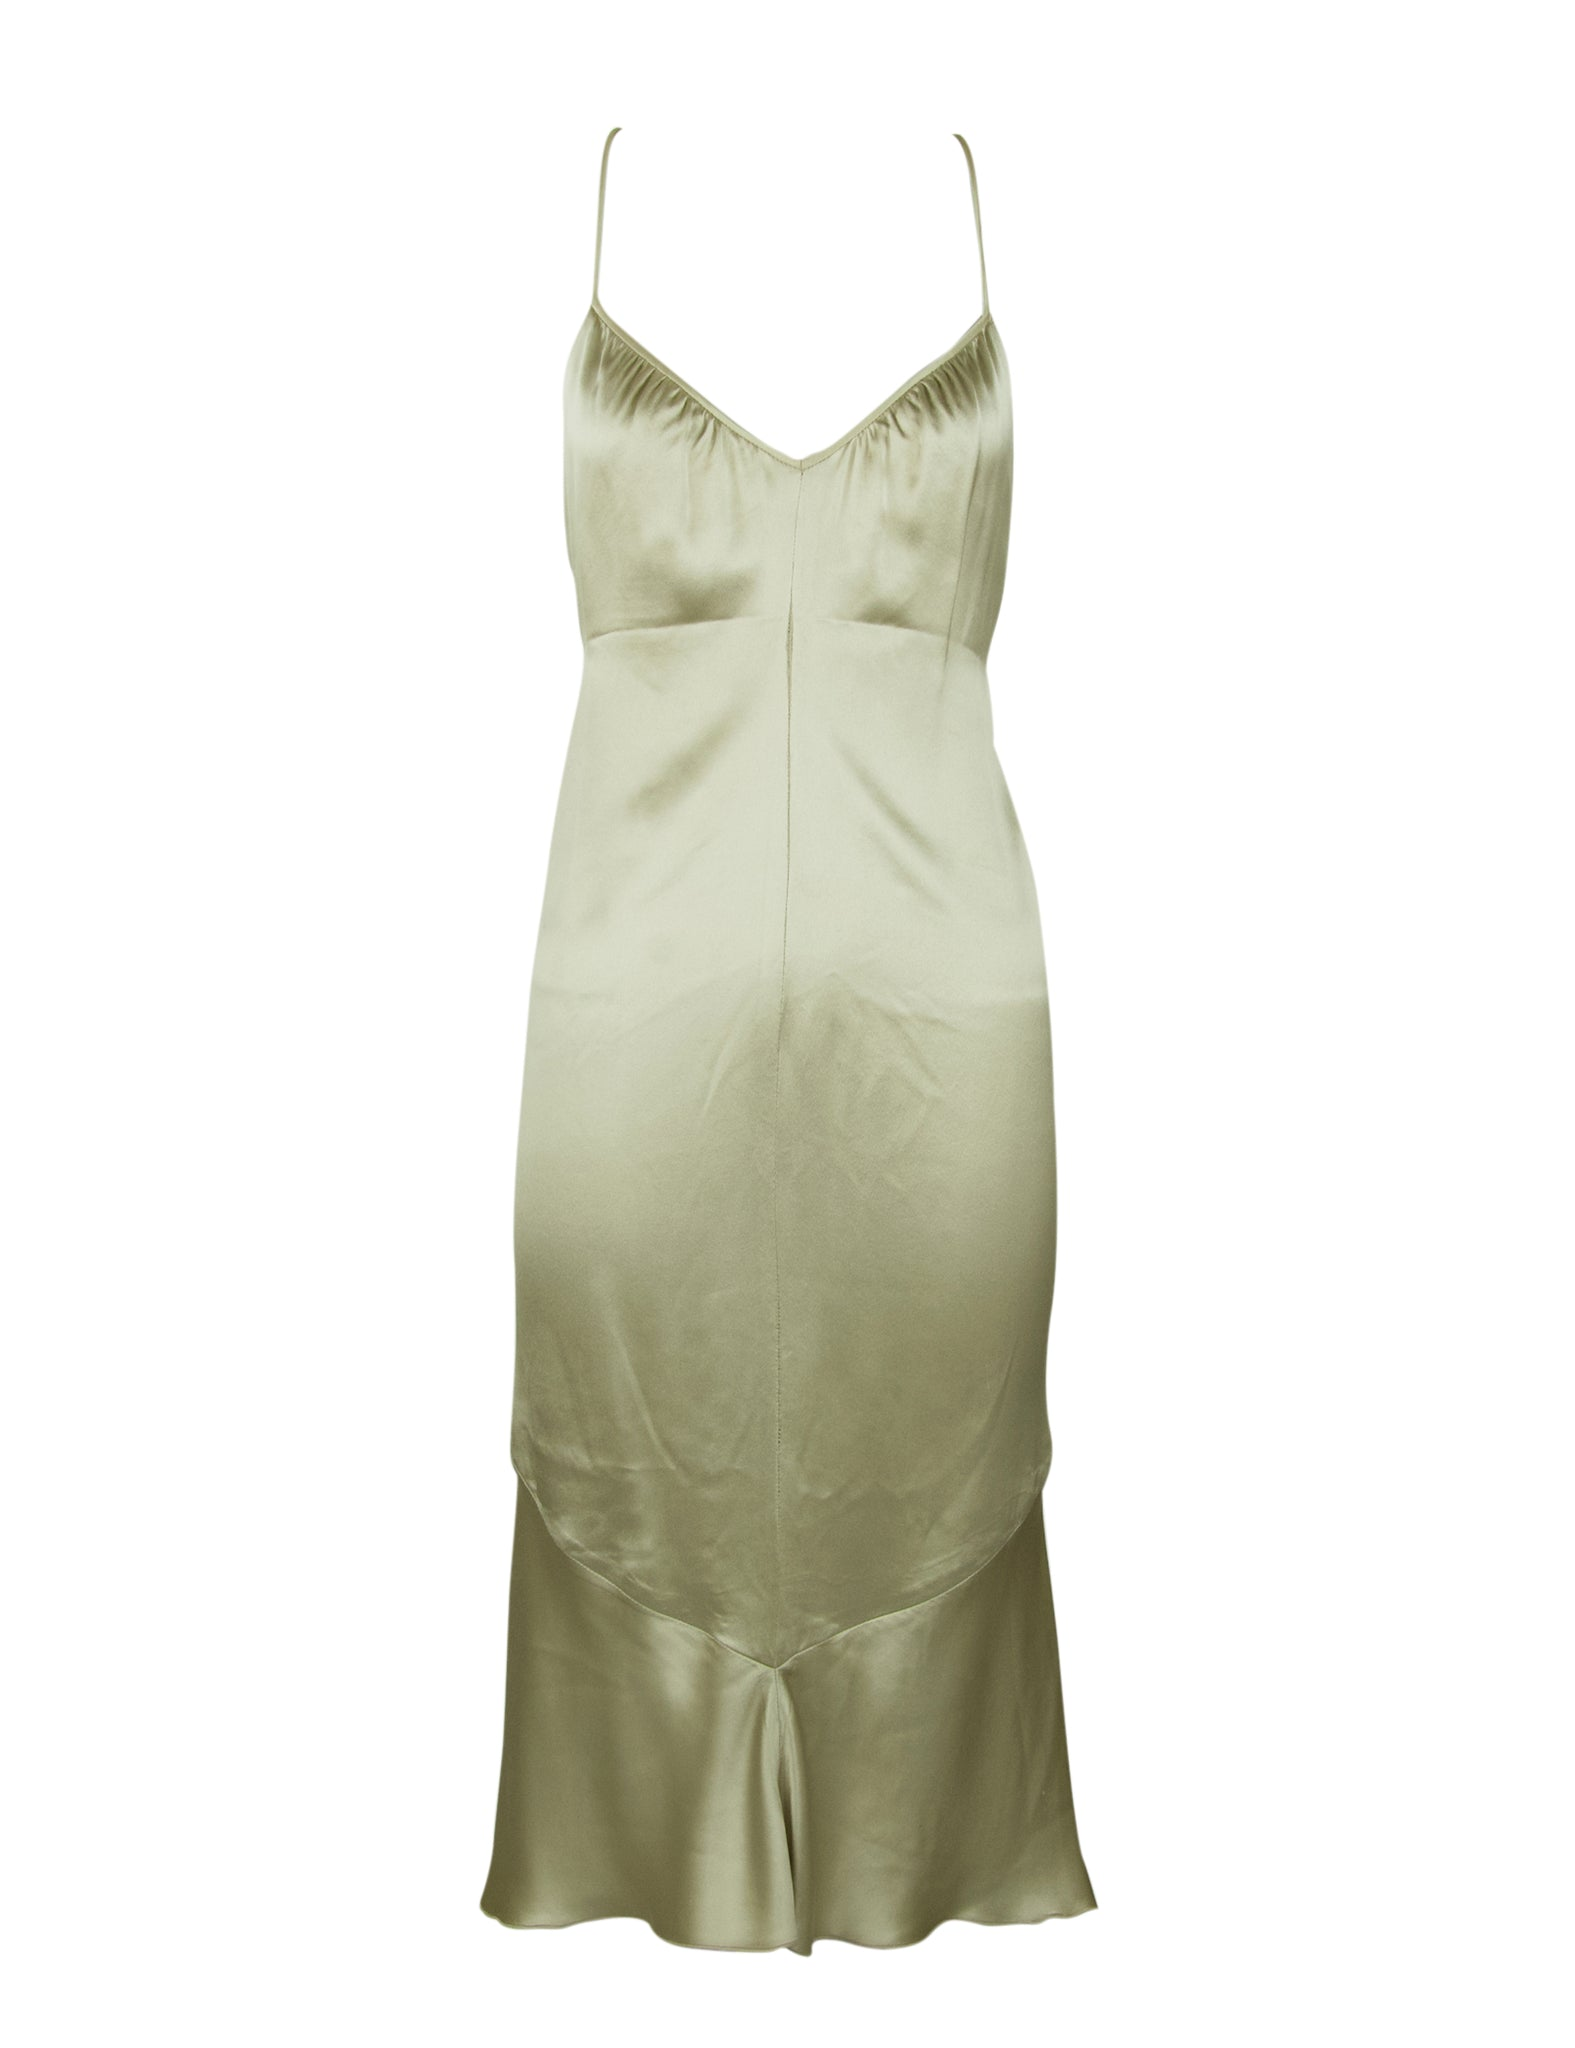 Vintage Valentino Champagne Slip Dress with Beading